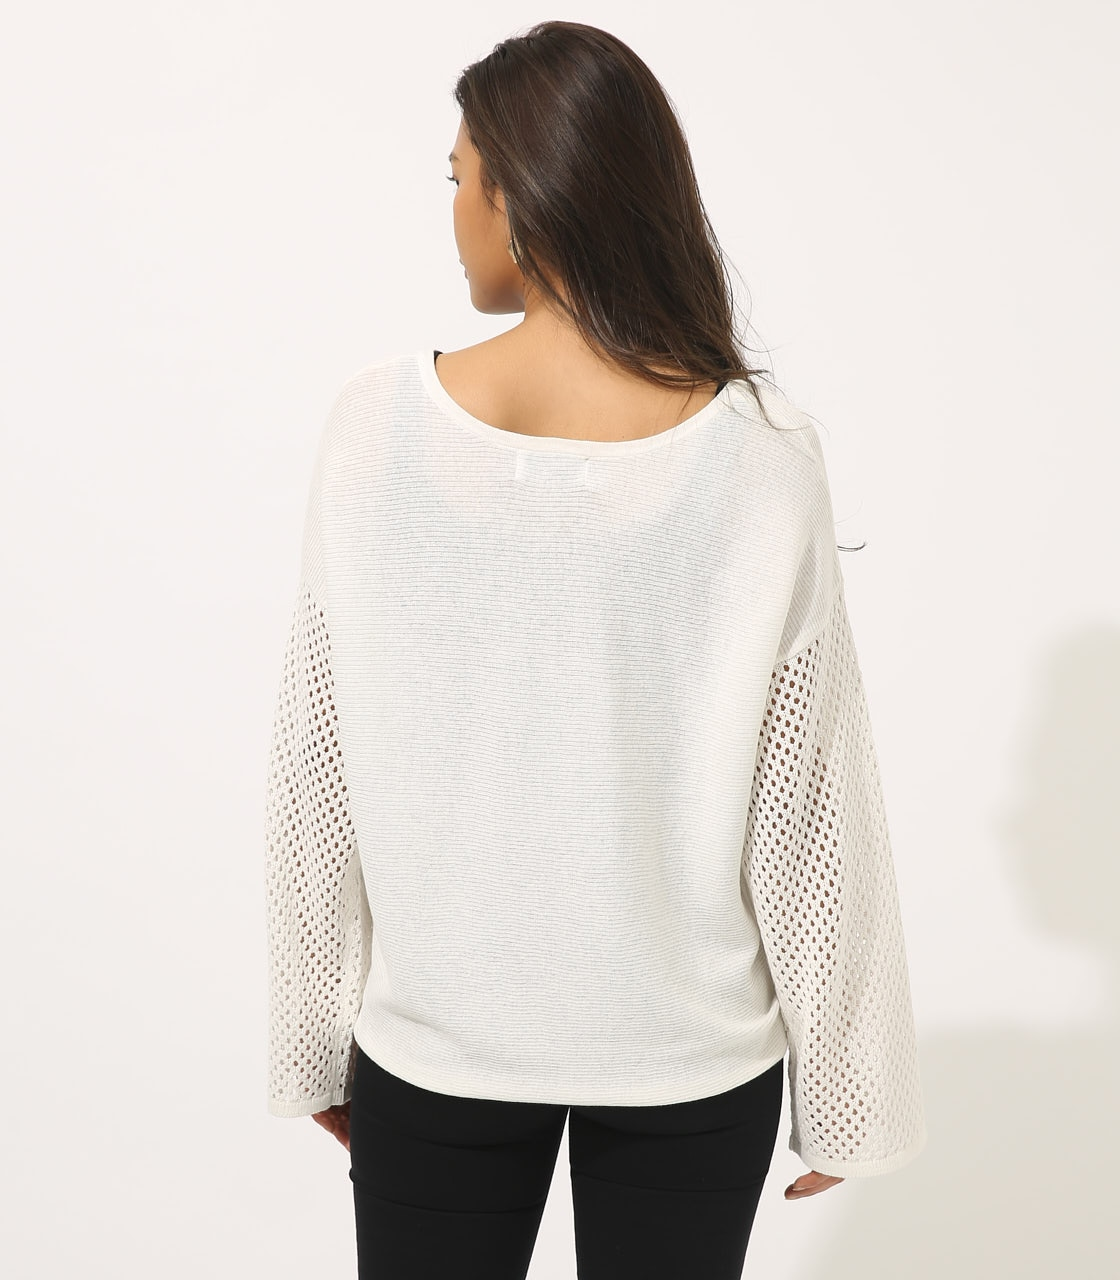 【AZUL BY MOUSSY】CROCHET SLEEVE KNIT TOPS 詳細画像 O/WHT 6